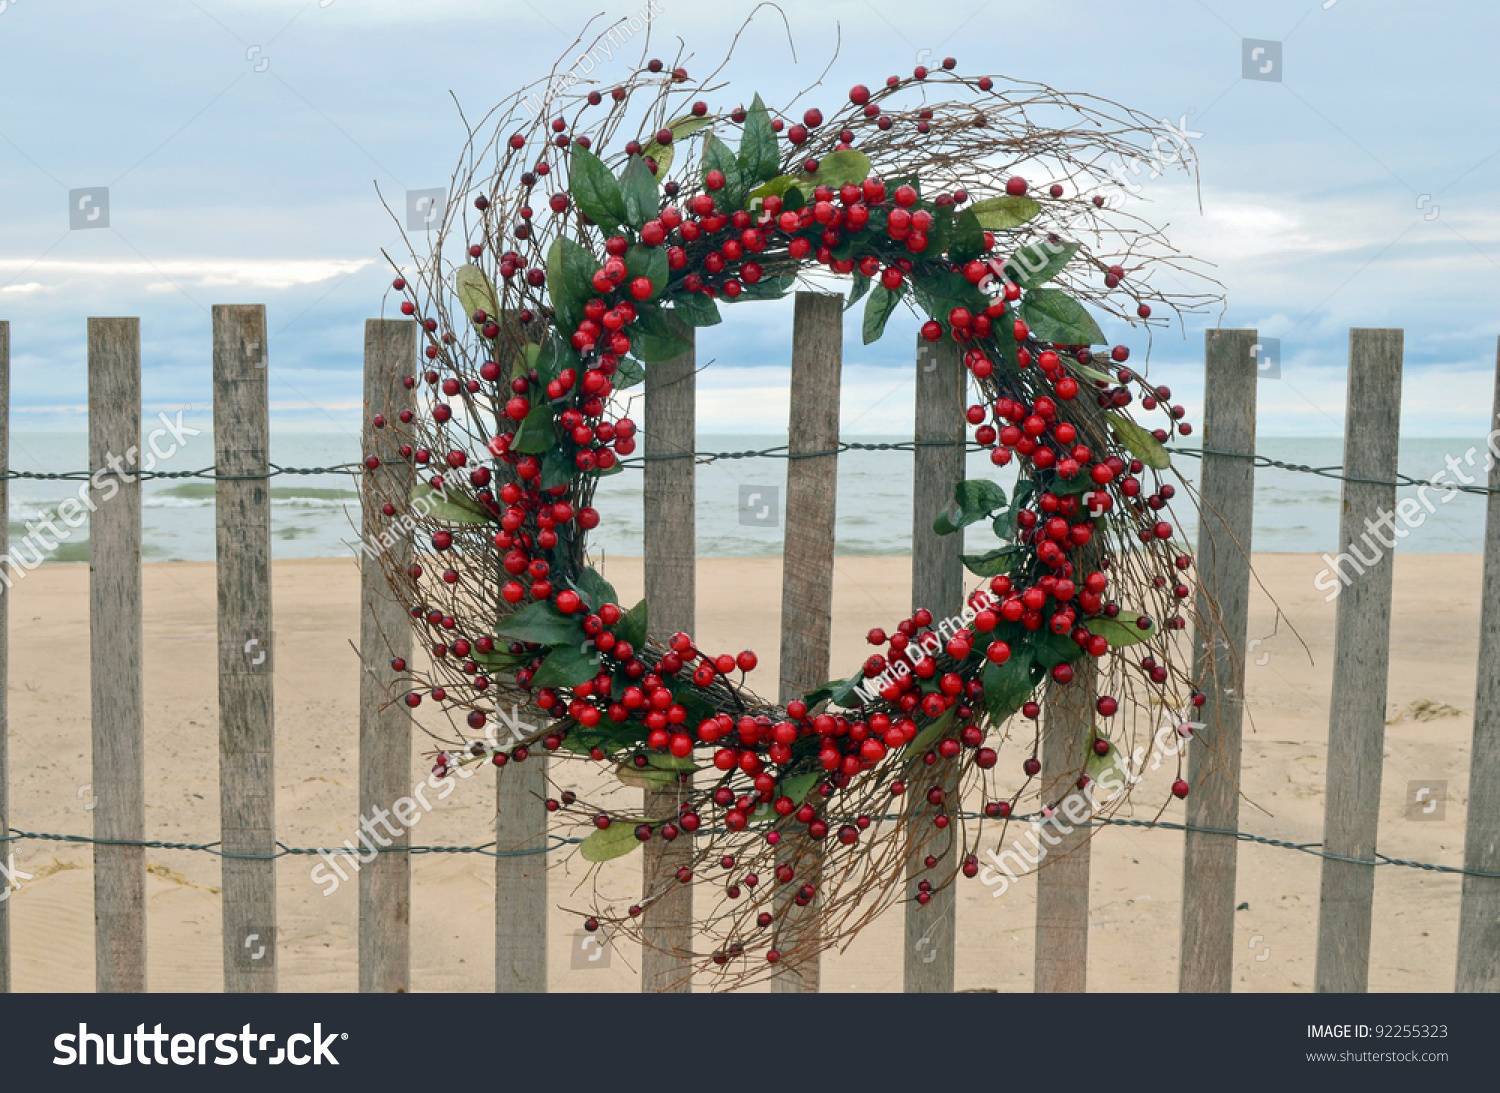 christmas wreath with red berries hanging on a beach fence - Beach Christmas Wreath